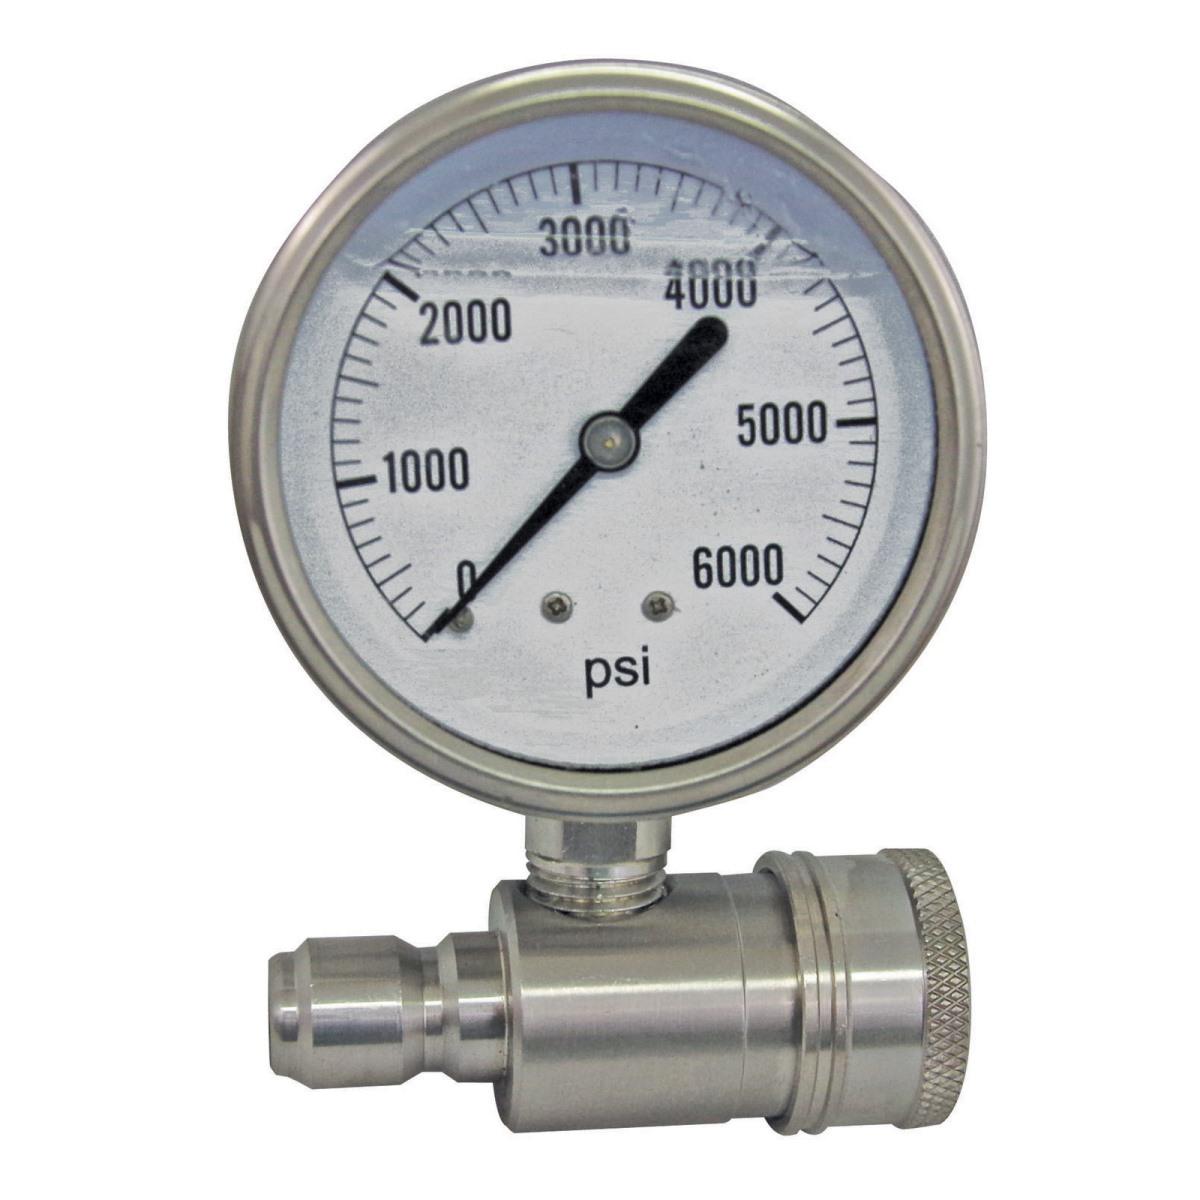 Pressure Gauge 5800psi with Quick Connects